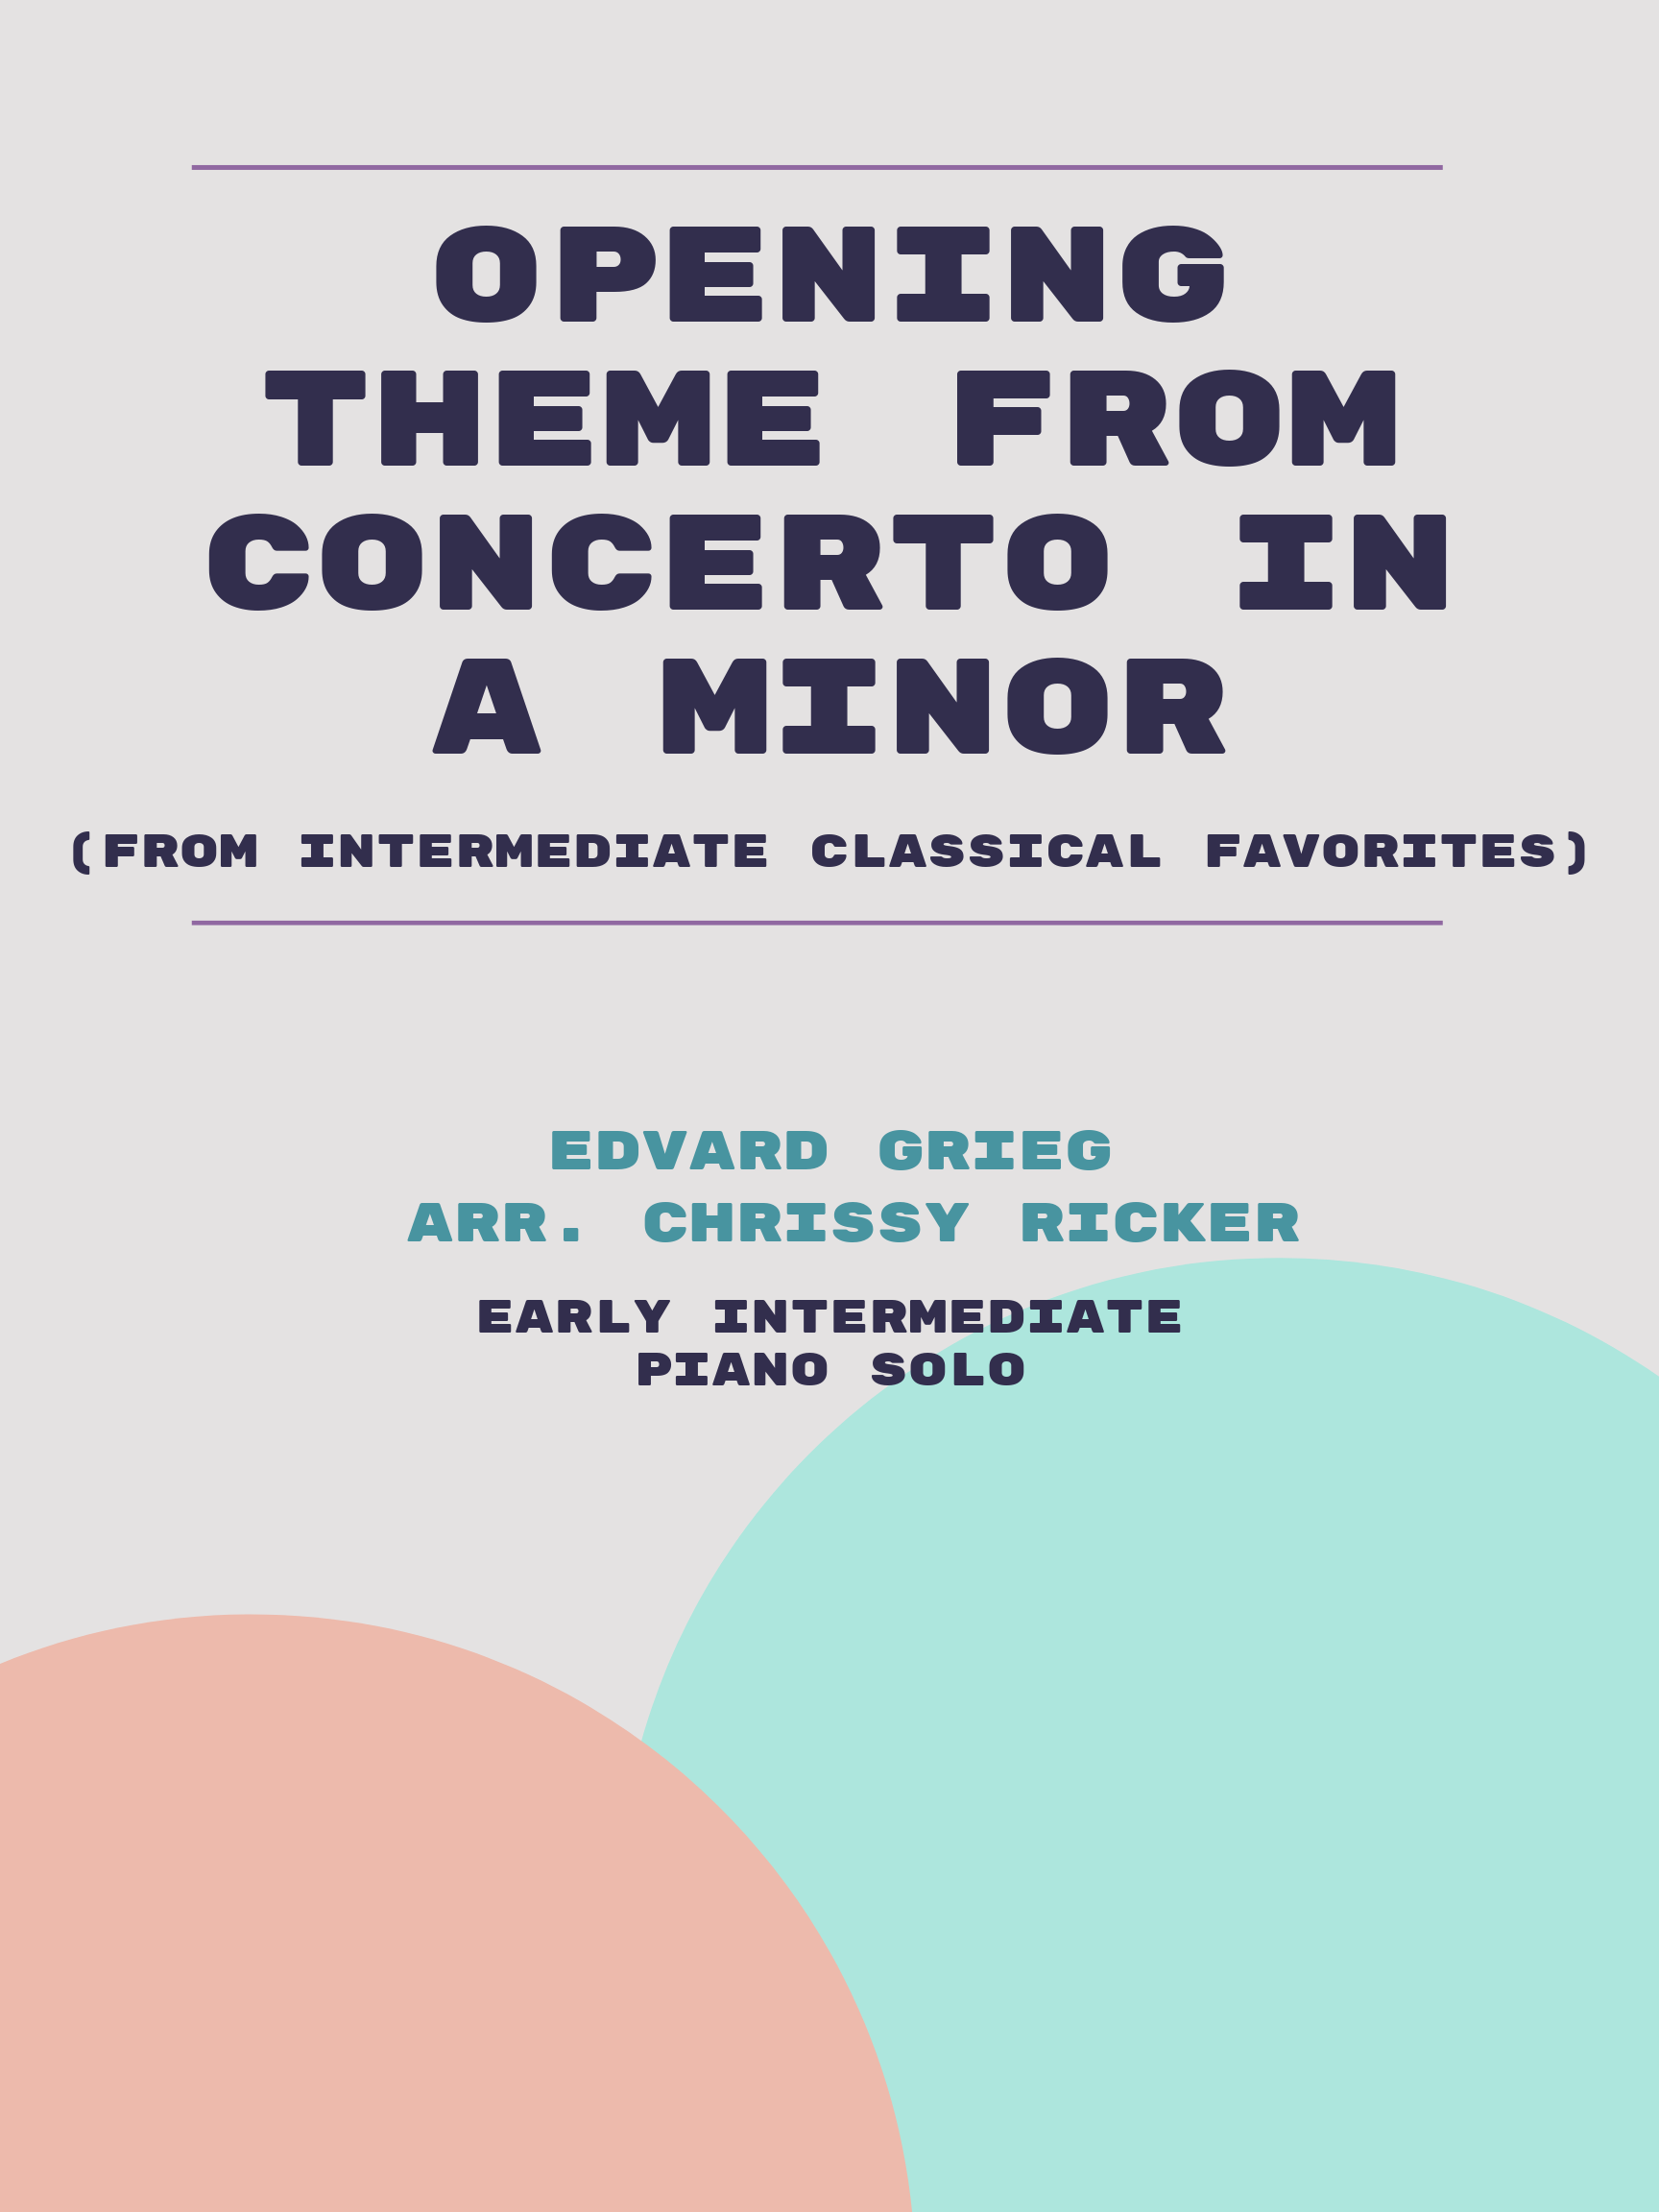 Opening Theme from Concerto in A Minor by Edvard Grieg